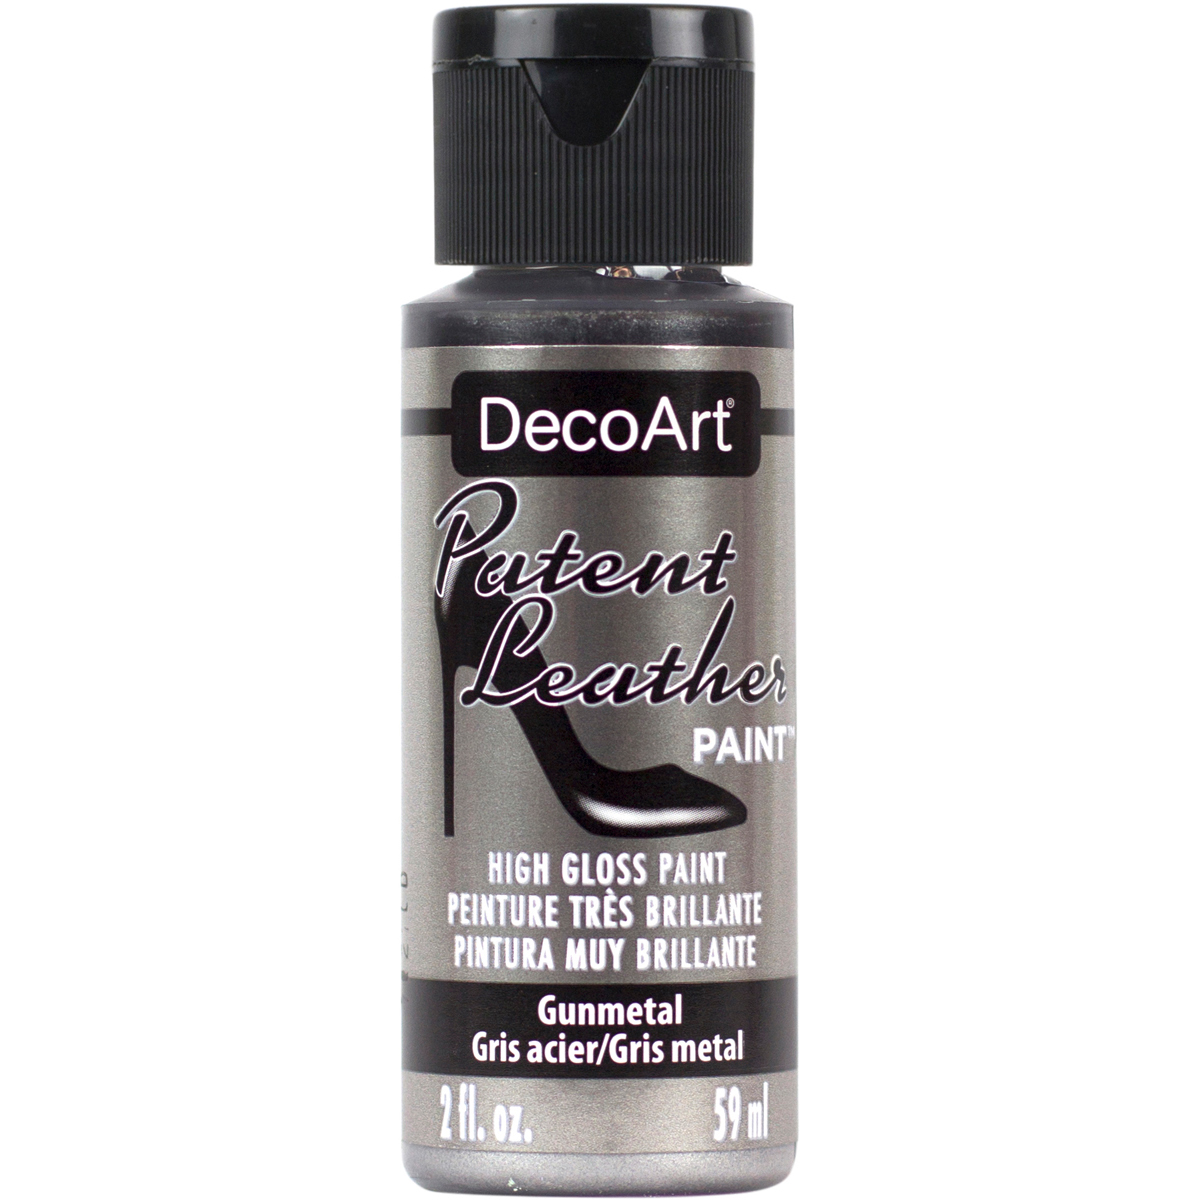 Patent Leather Paint 2oz-Gunmetal